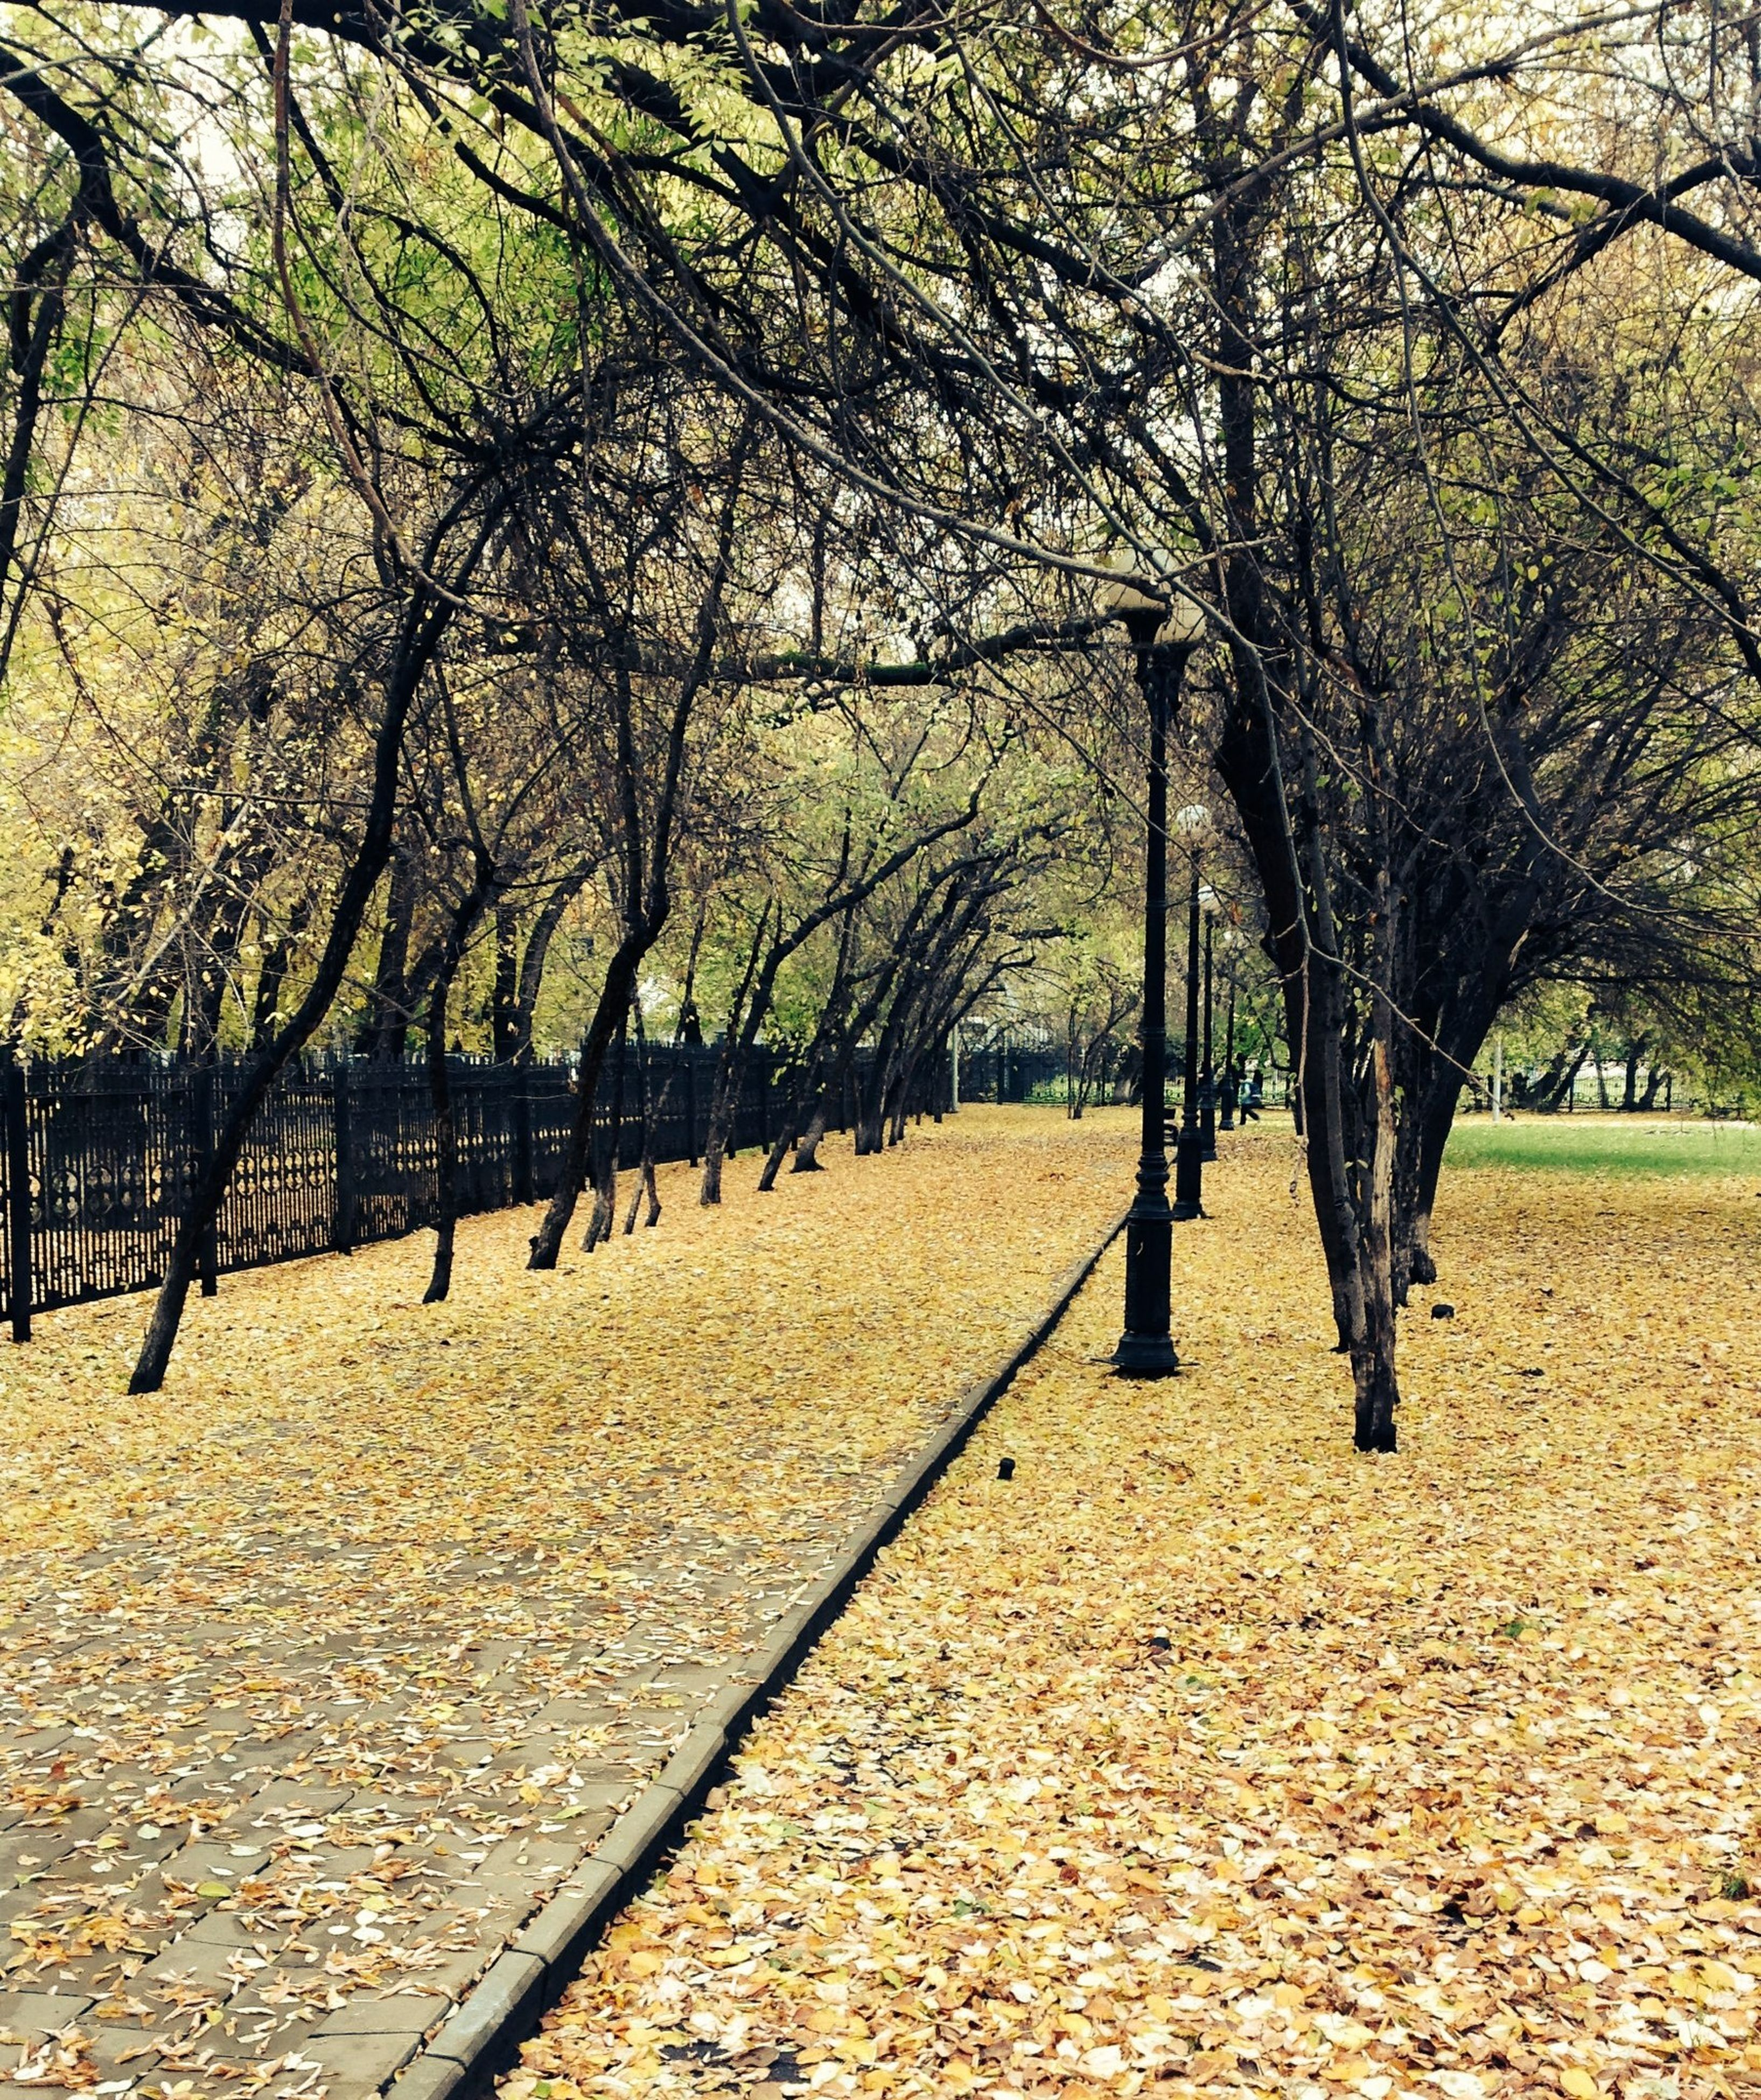 tree, autumn, the way forward, tranquility, treelined, nature, change, tranquil scene, diminishing perspective, park - man made space, tree trunk, branch, footpath, beauty in nature, bare tree, growth, day, landscape, in a row, season